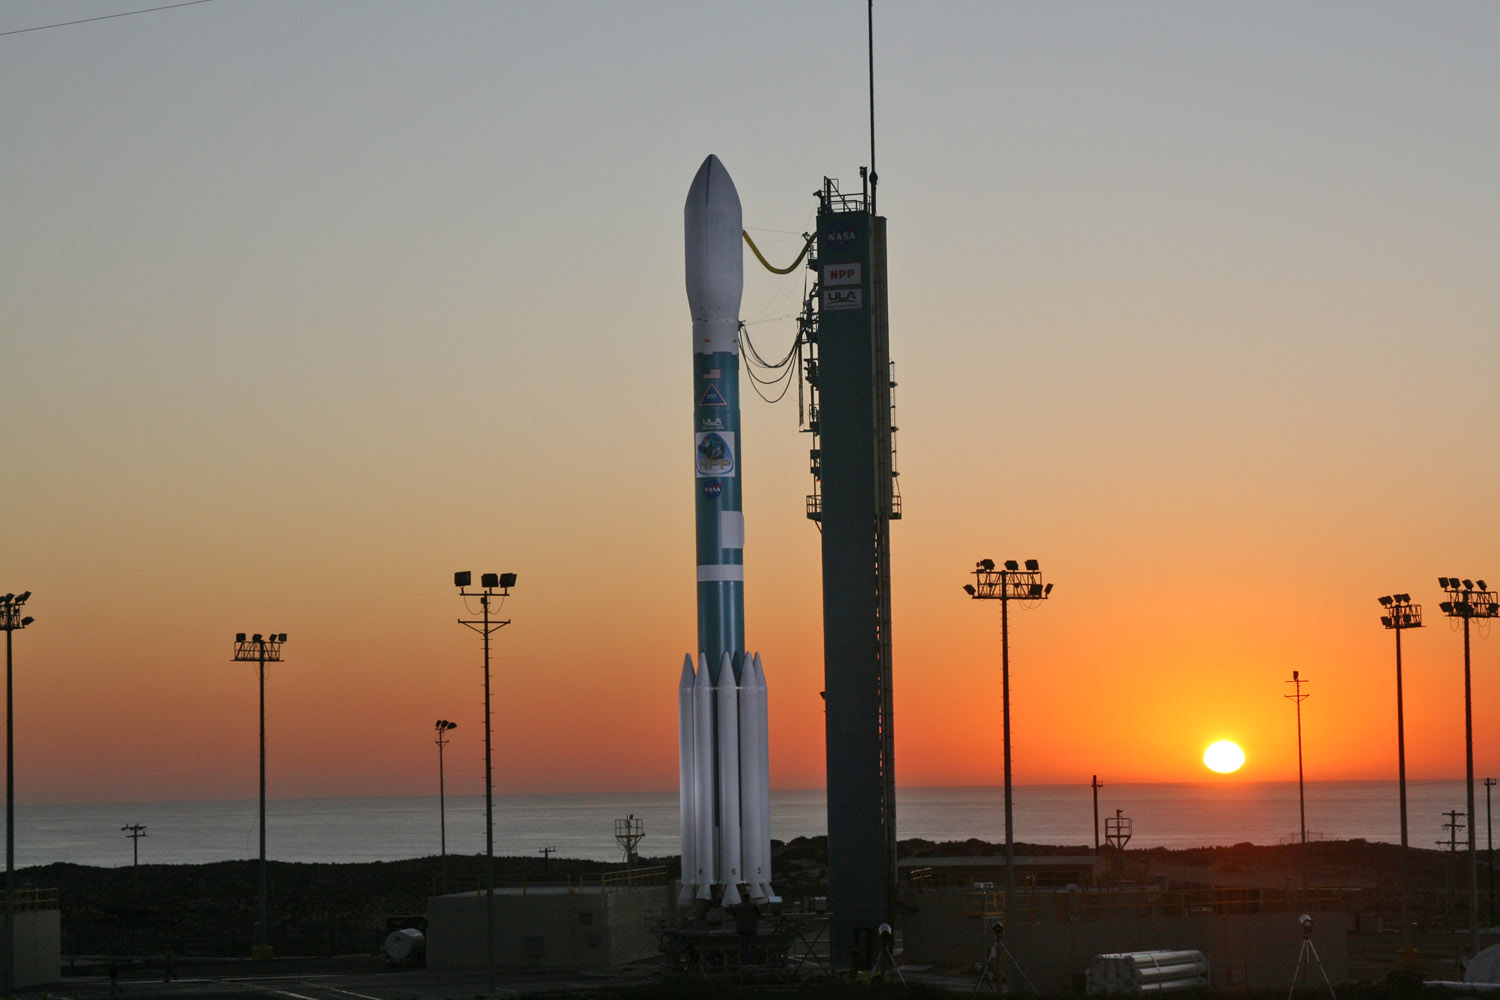 What To Do With The Final Delta 2 Rocket?